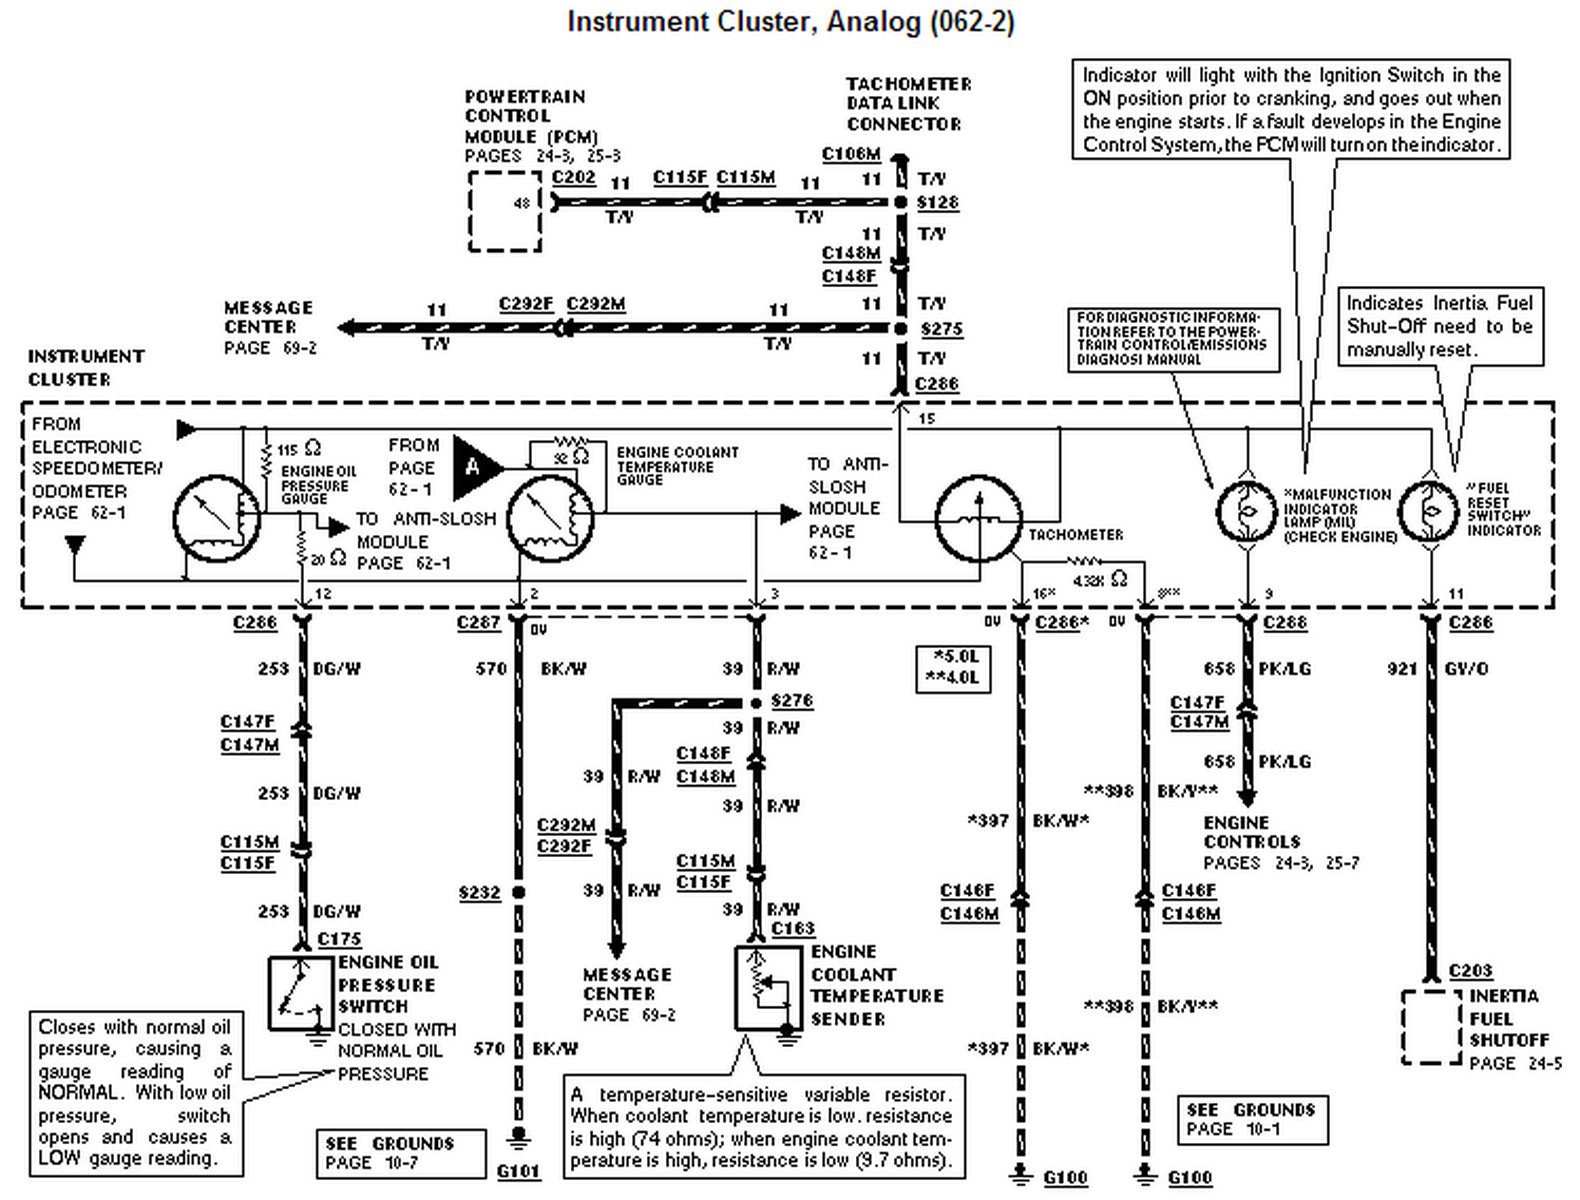 2007 F350 Fuse Diagram Wiring Library 07 Ford F 350 Box Schematic Diesel Images Gallery